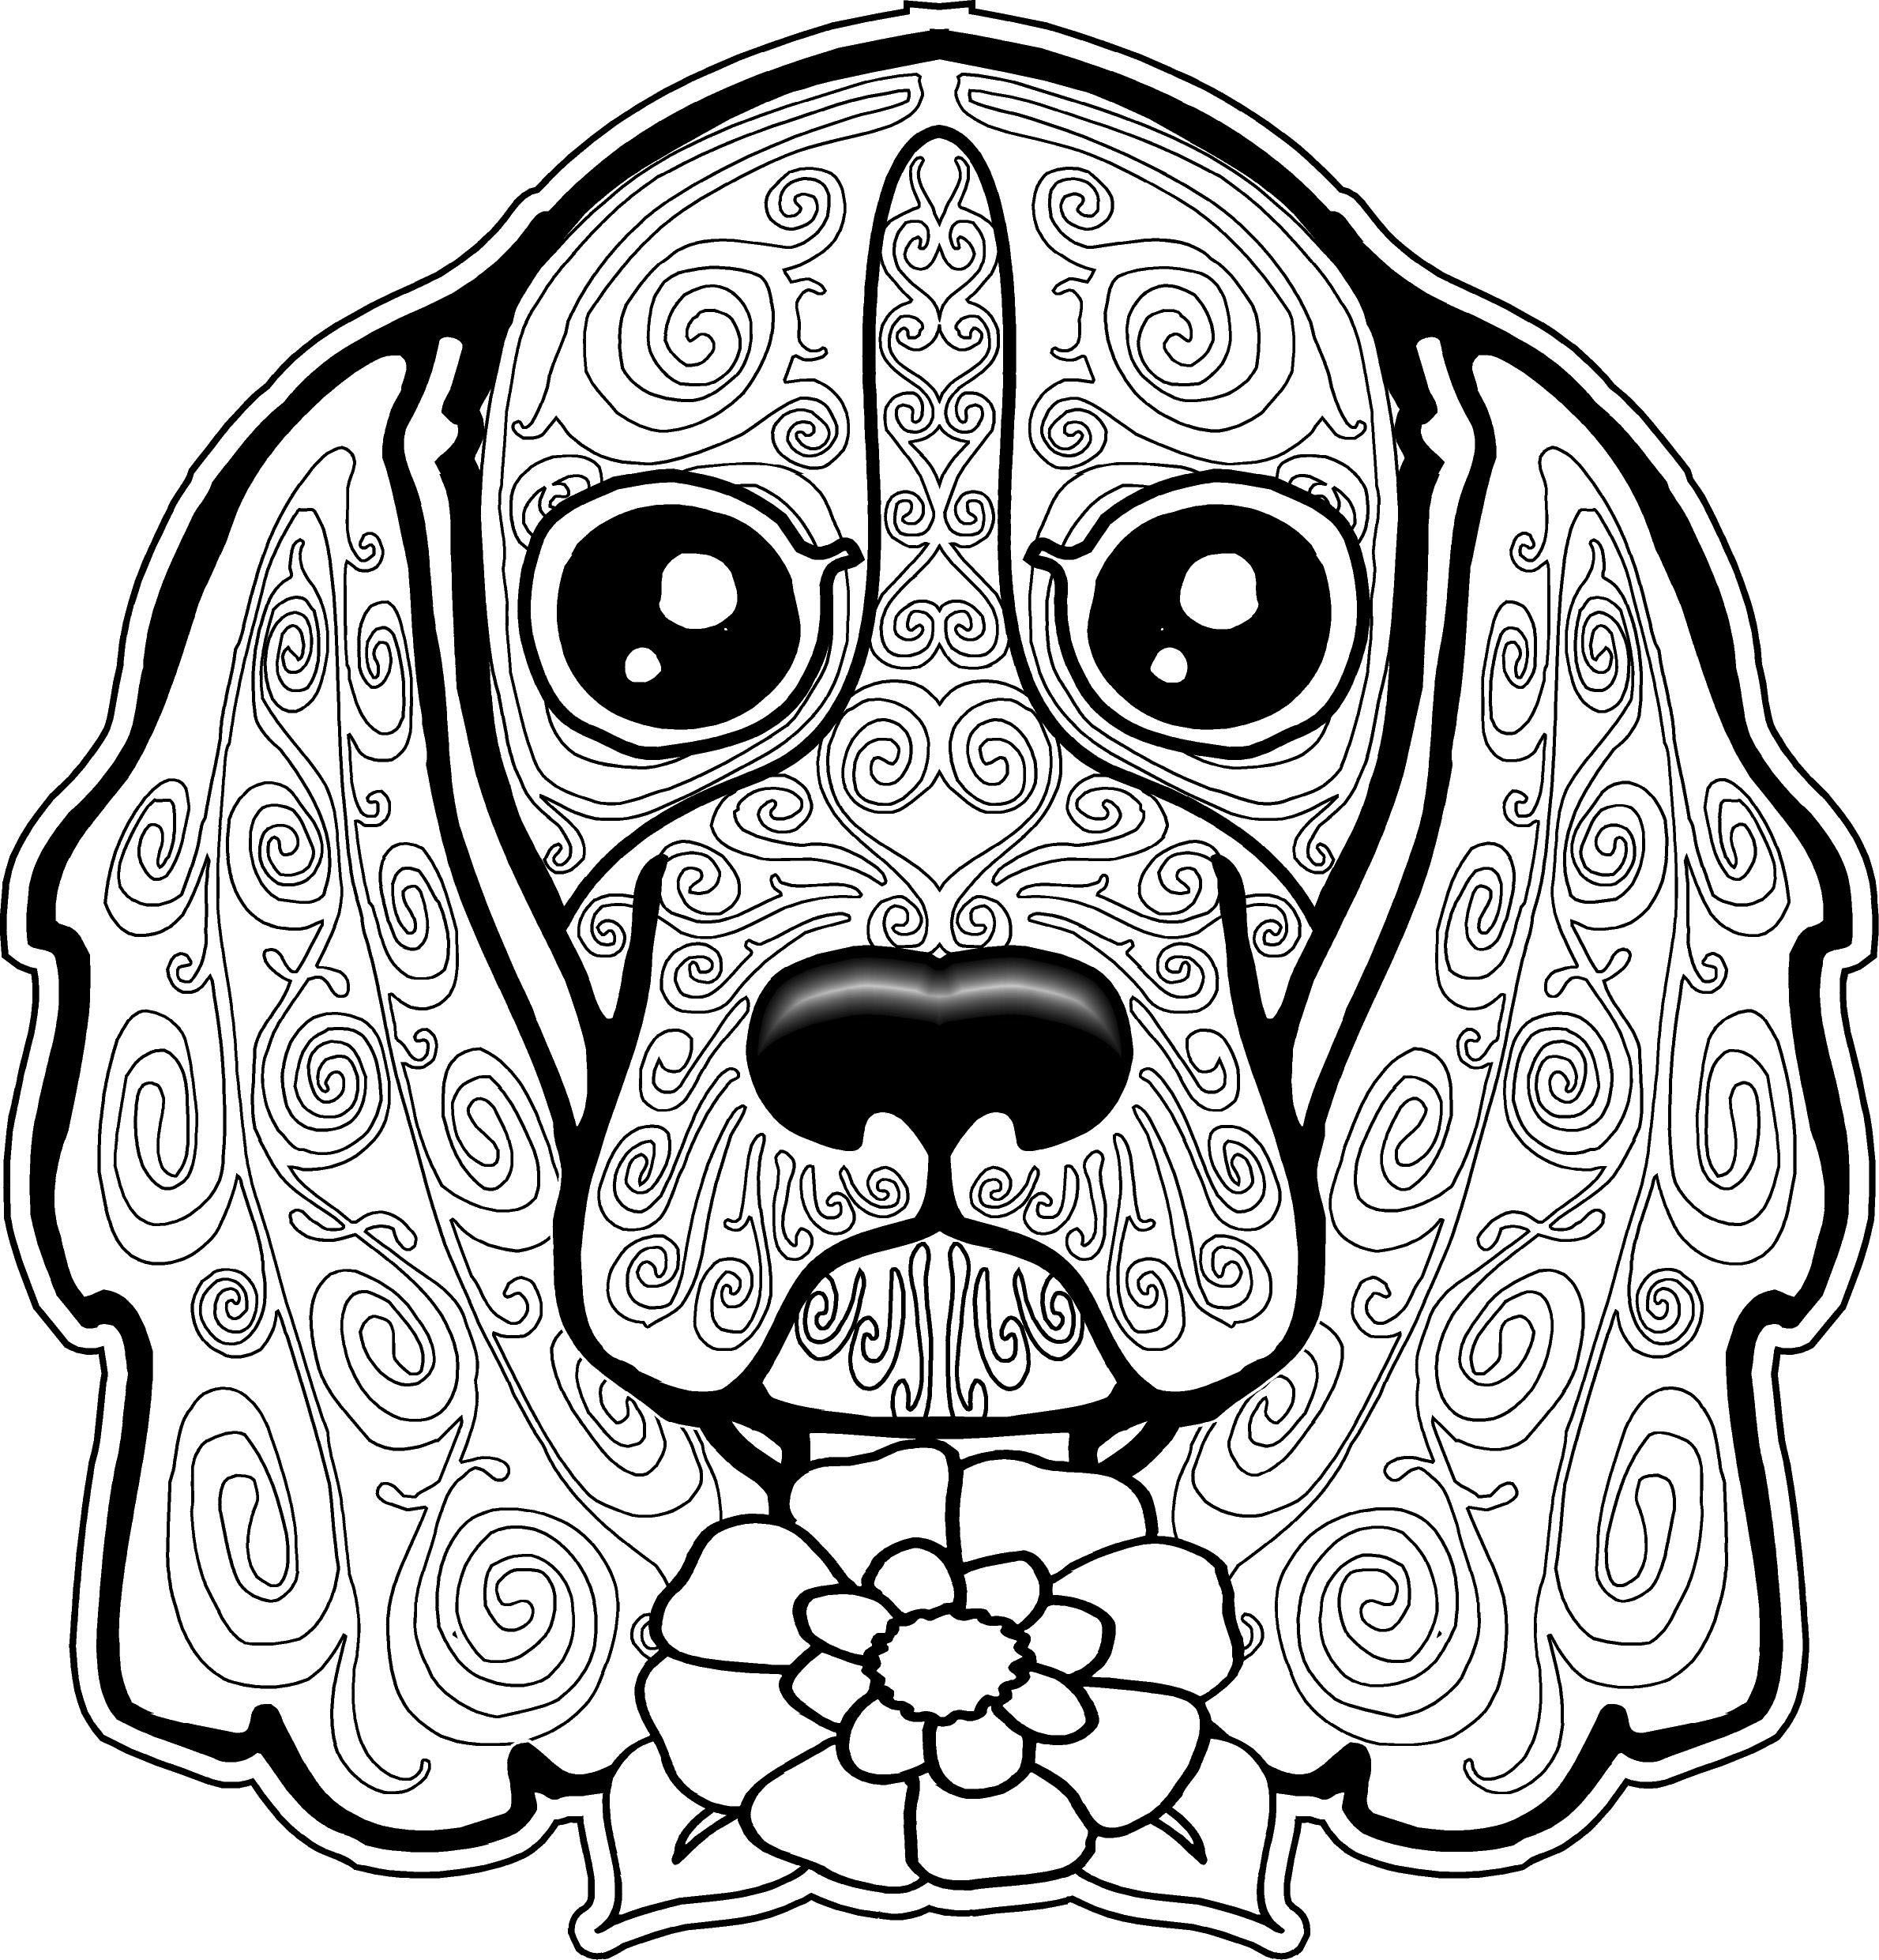 Dog Coloring Page Dog Coloring Pages Free Coloring Page